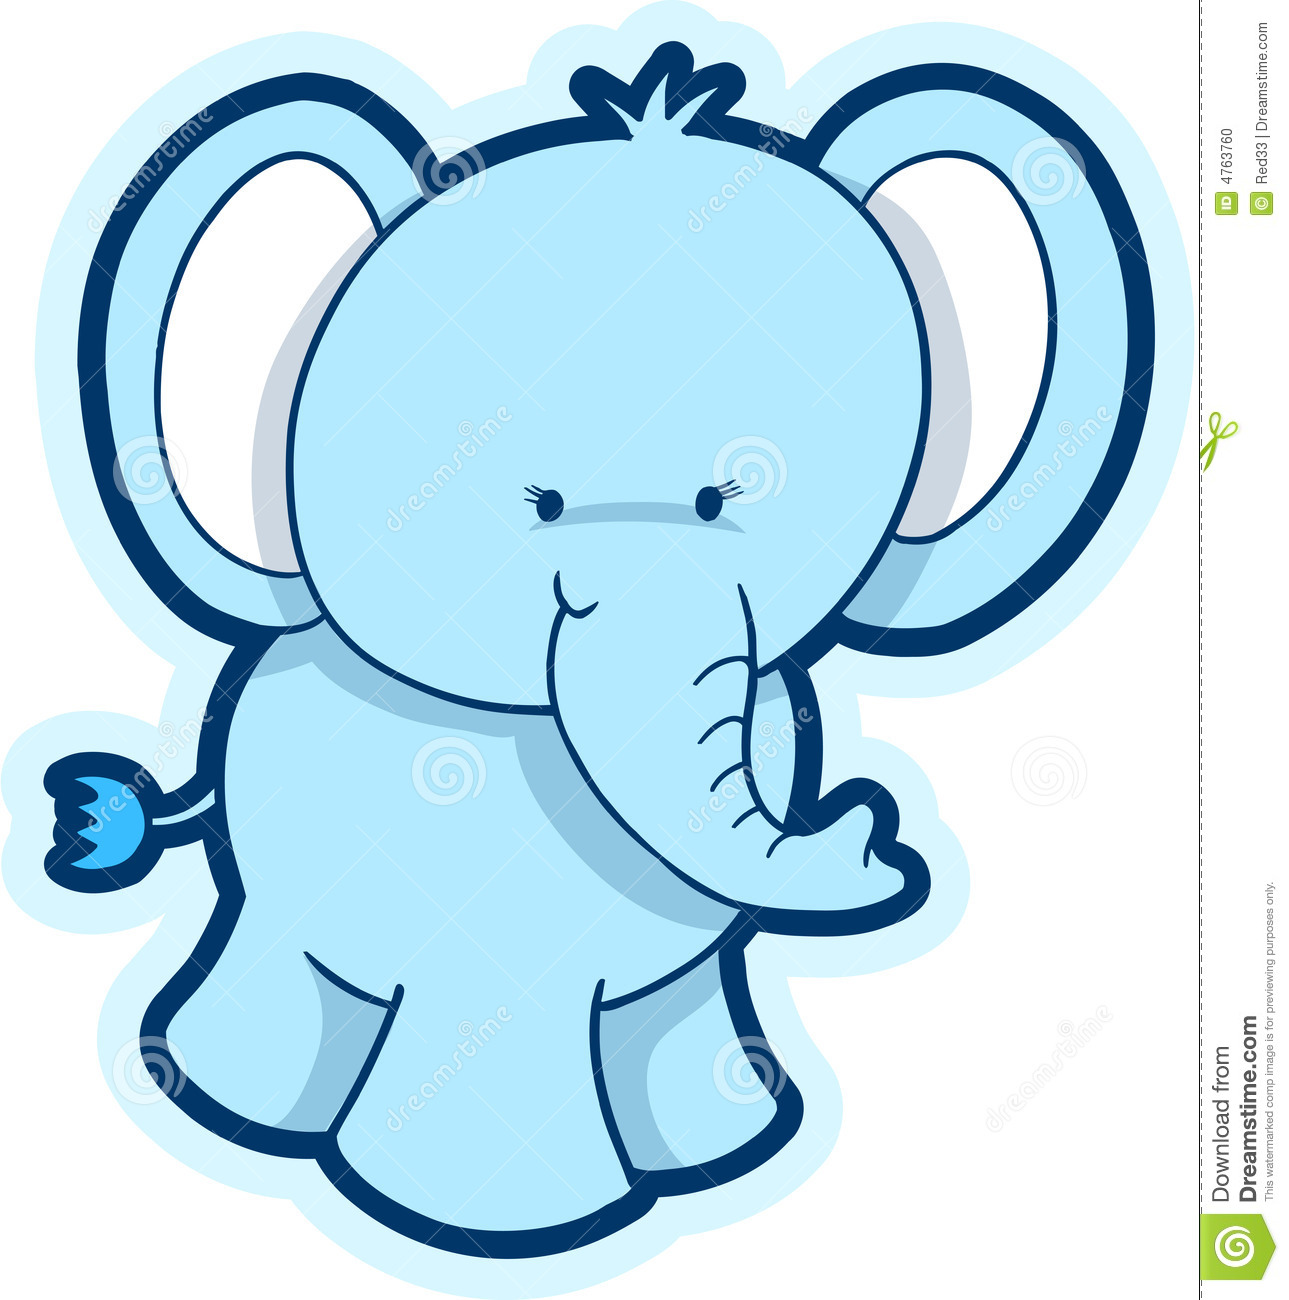 15 cute elephant vector graphics images cute baby Elephant Silhouette Clip Art Baby Elephant Clip Art